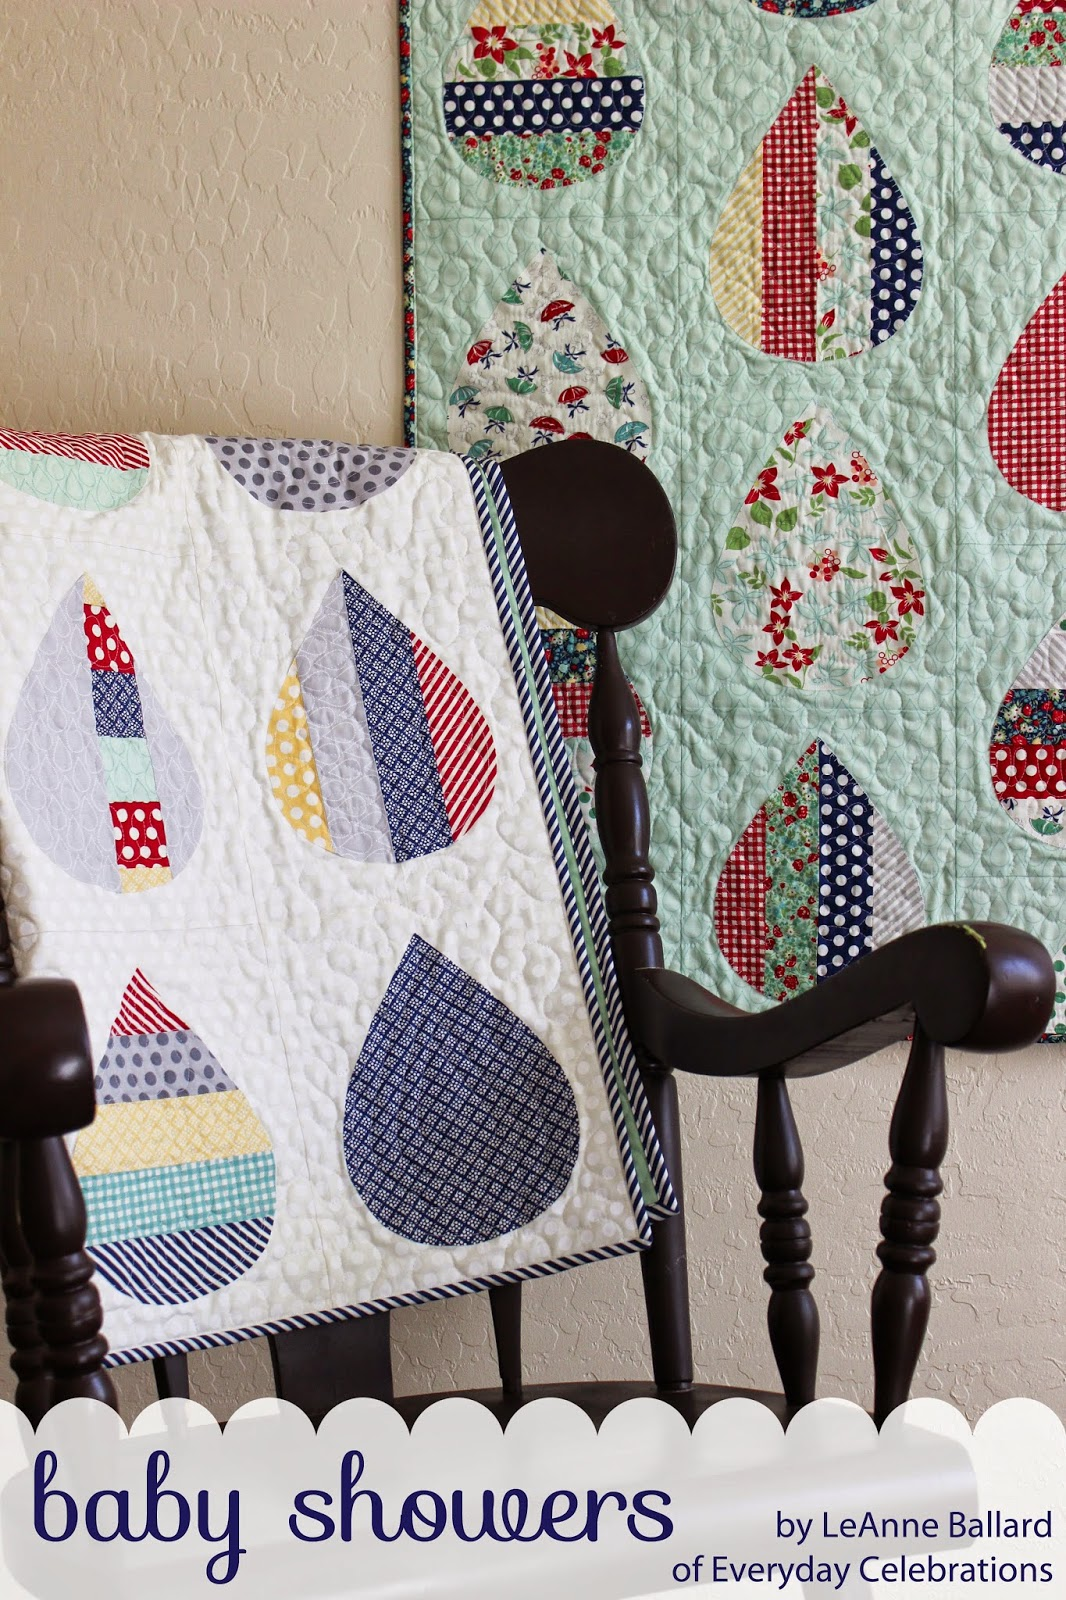 Free quilt pattern using Moda APRIL SHOWERS Fabric